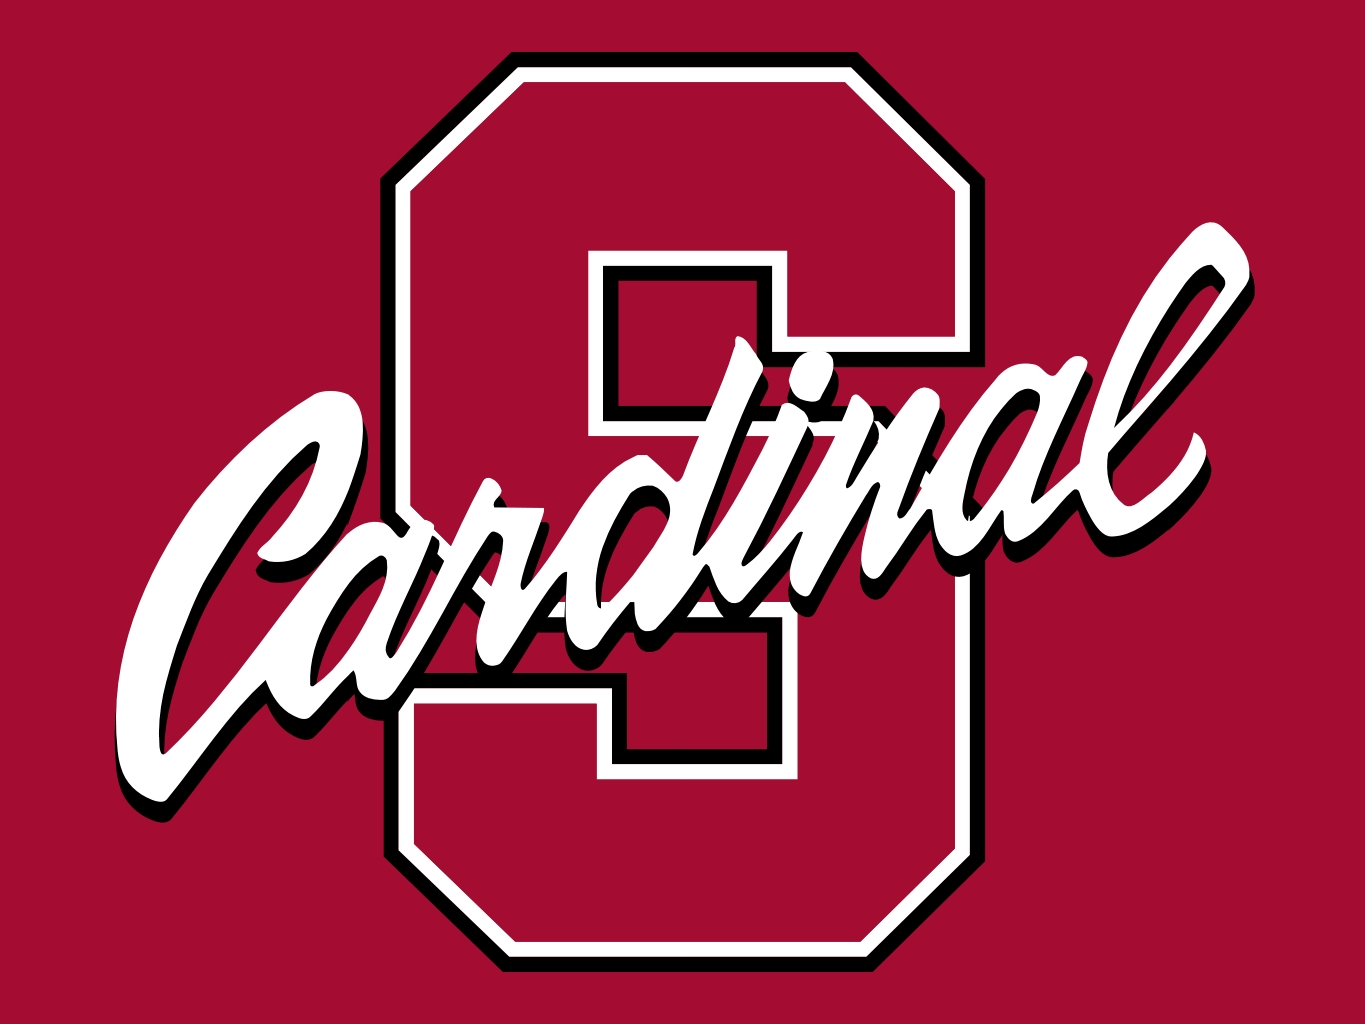 stanford football wallpaper - photo #38